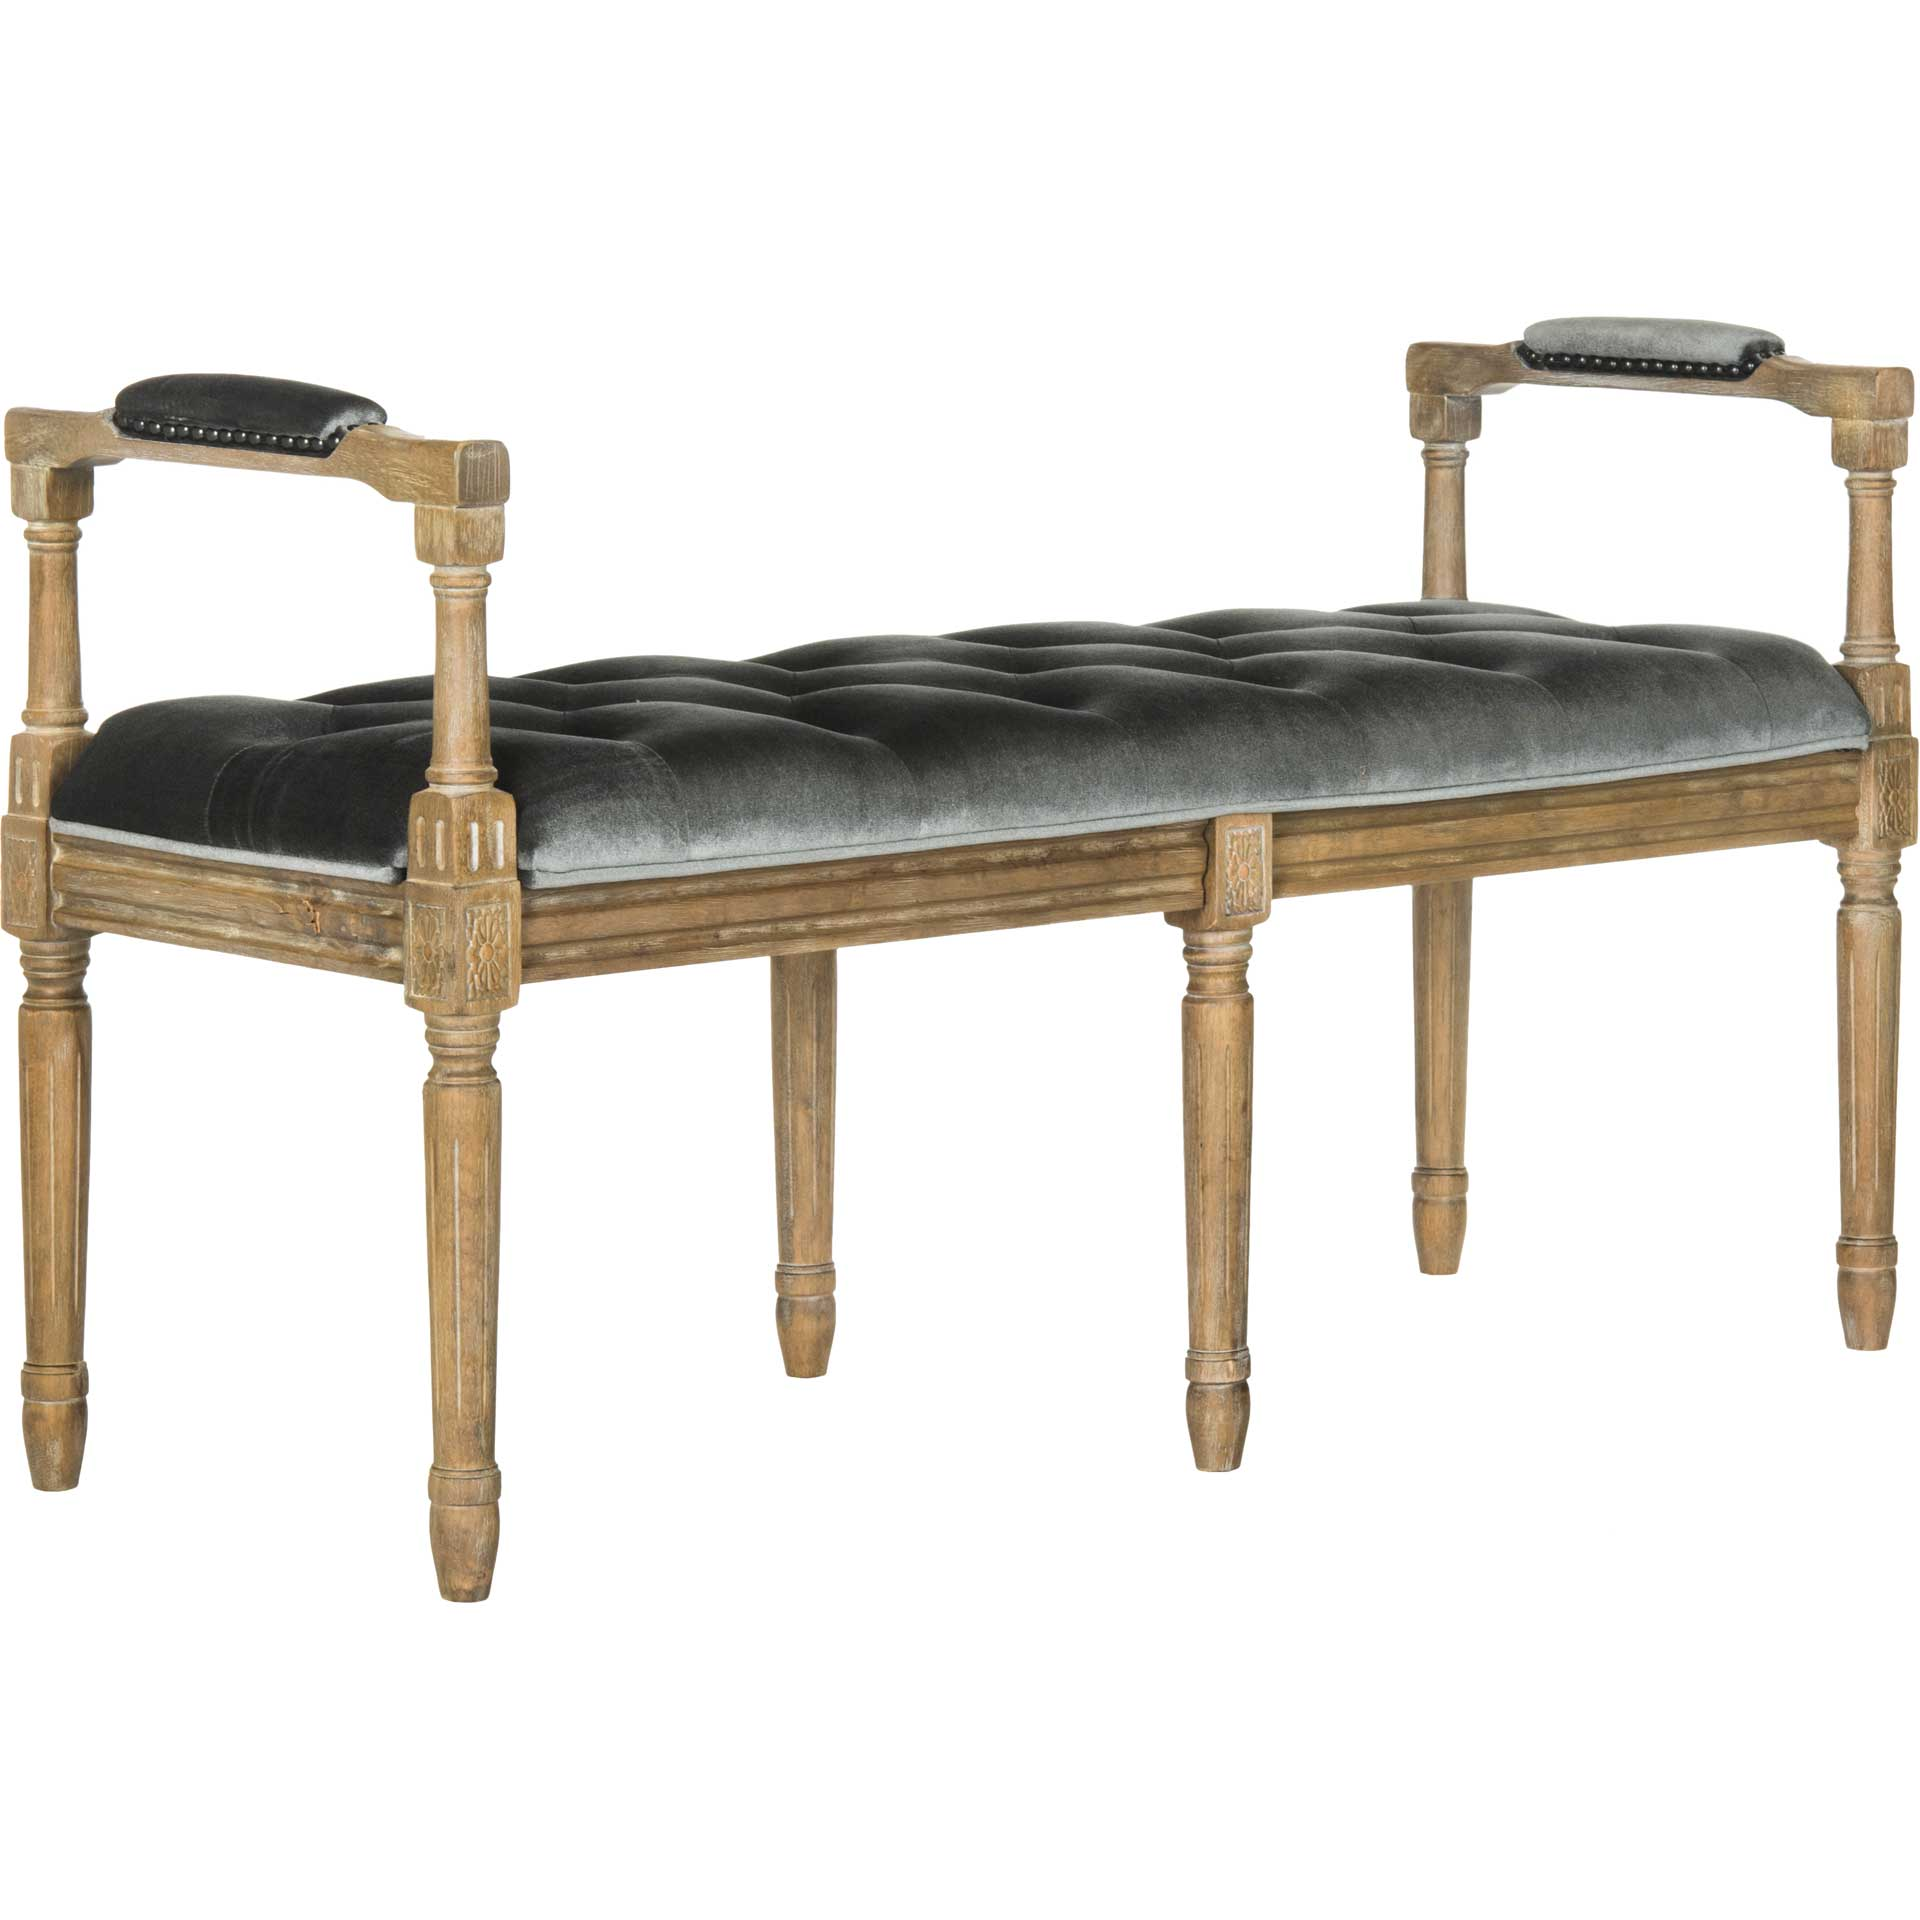 Raja Velvet Rustic Oak Bench Gray/Rustic Oak